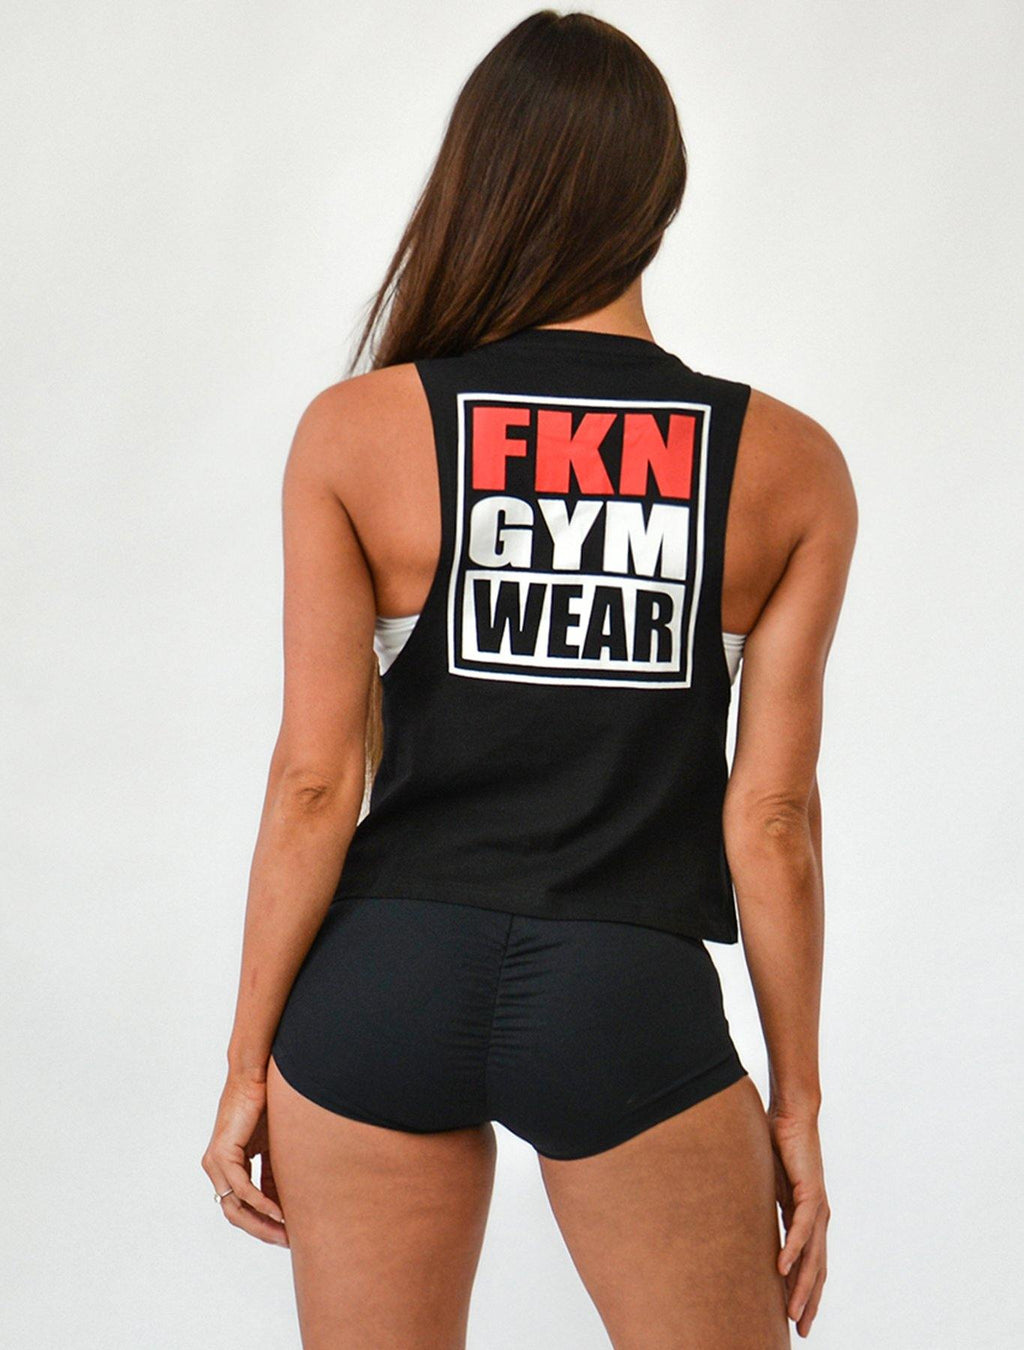 Gangsta | Classic Gym Tank Top - FKN Gym Wear